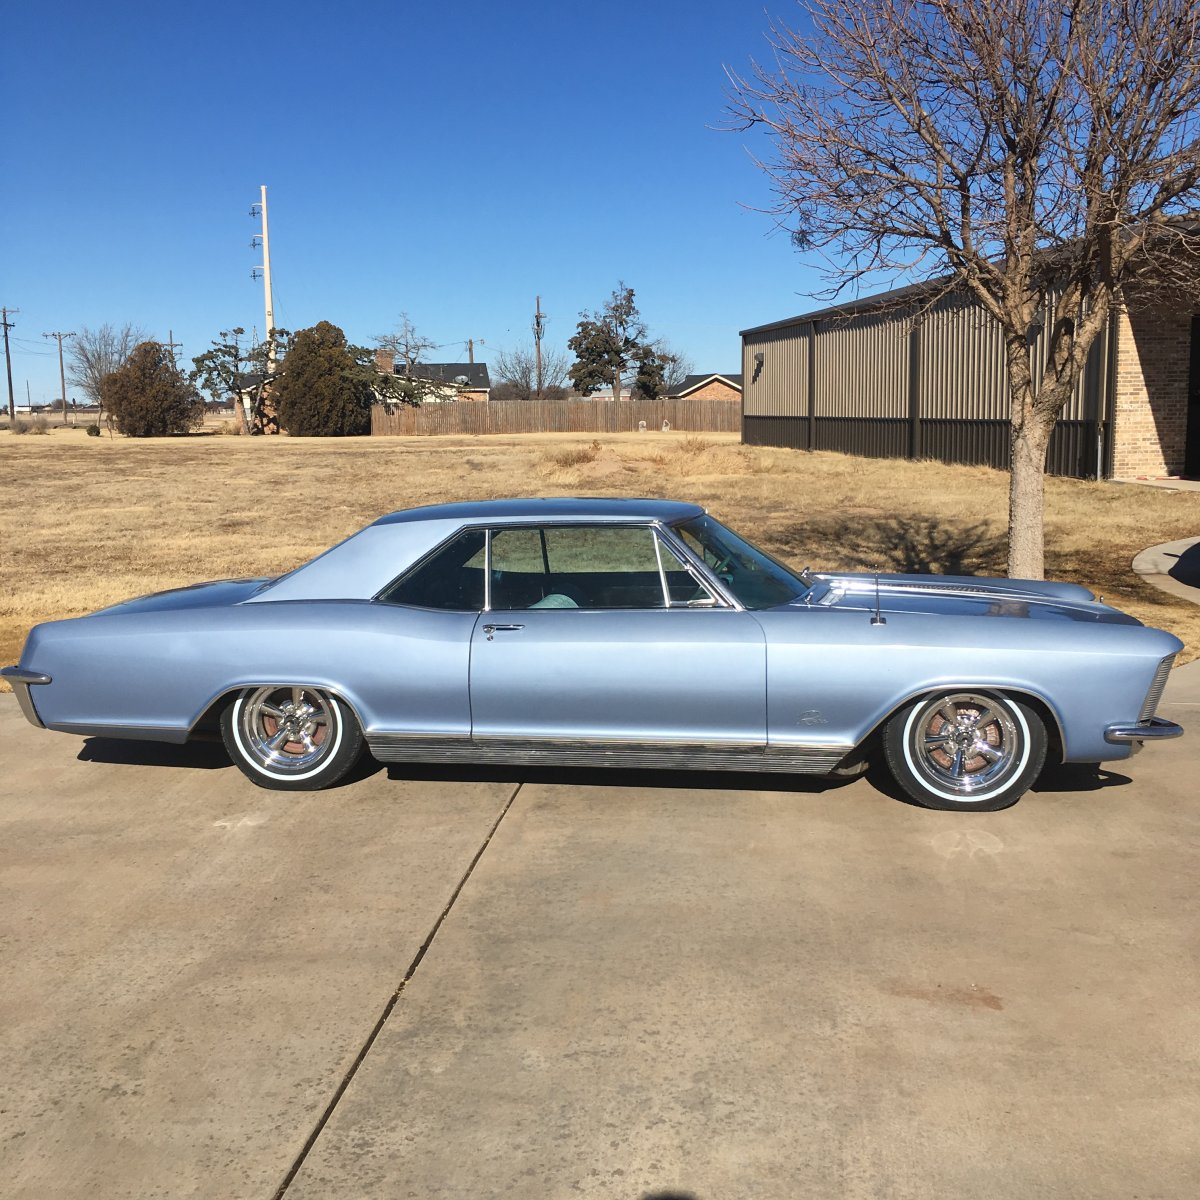 Sell My Car For Cash >> 1965 Buick Riviera 65 Rivi Lowrider | The H.A.M.B.